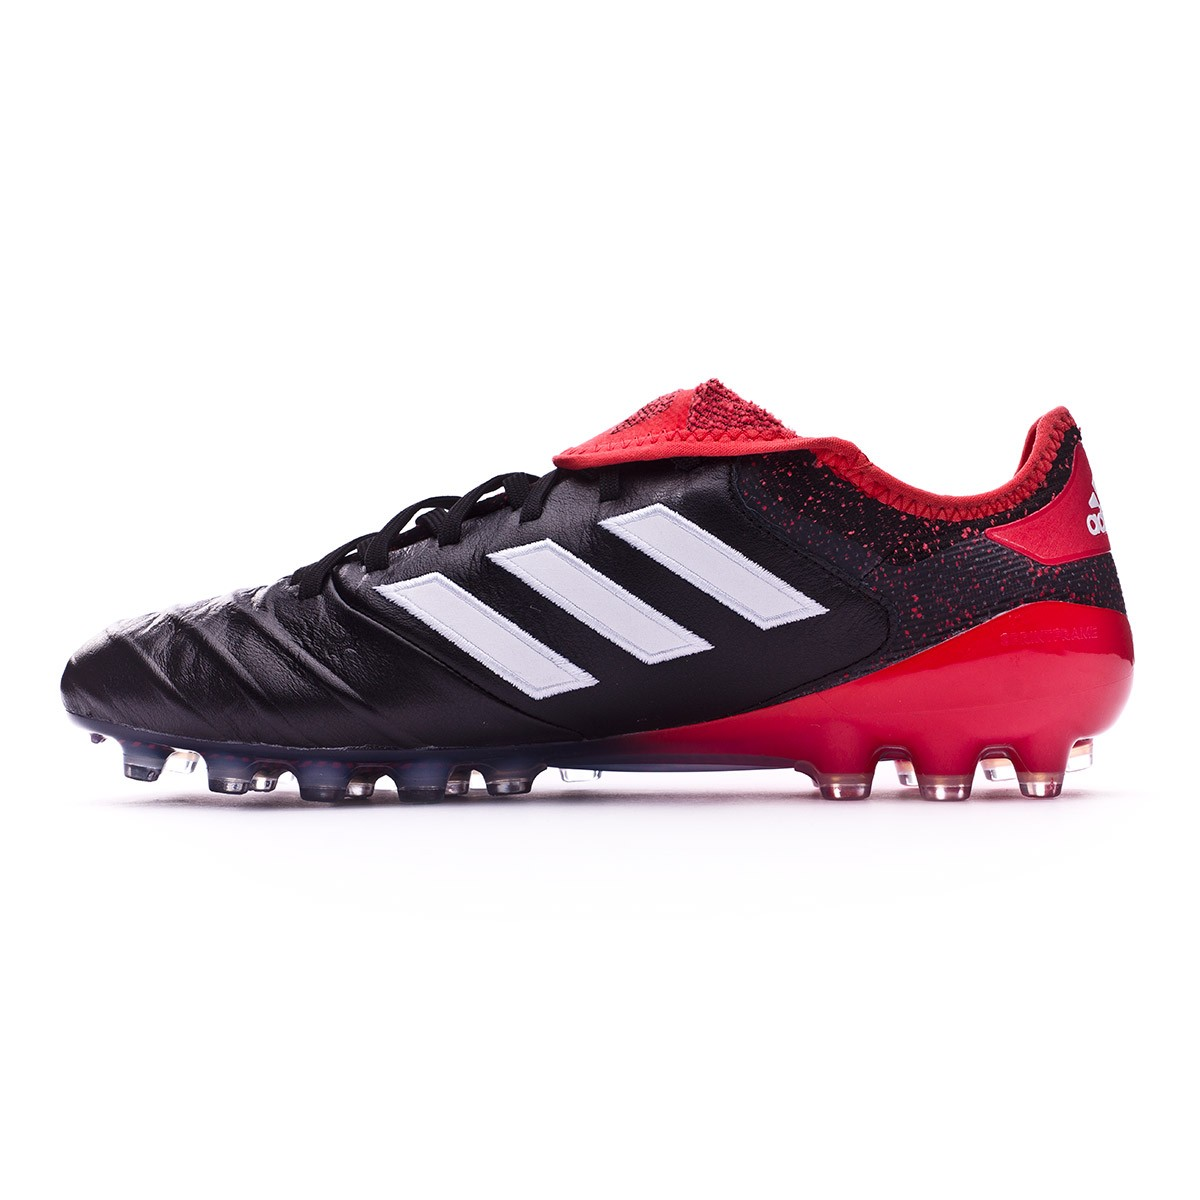 check out c031f f6232 Chaussure de foot adidas Copa 18.1 AG Core black-White-Real coral -  Boutique de football Fútbol Emotion